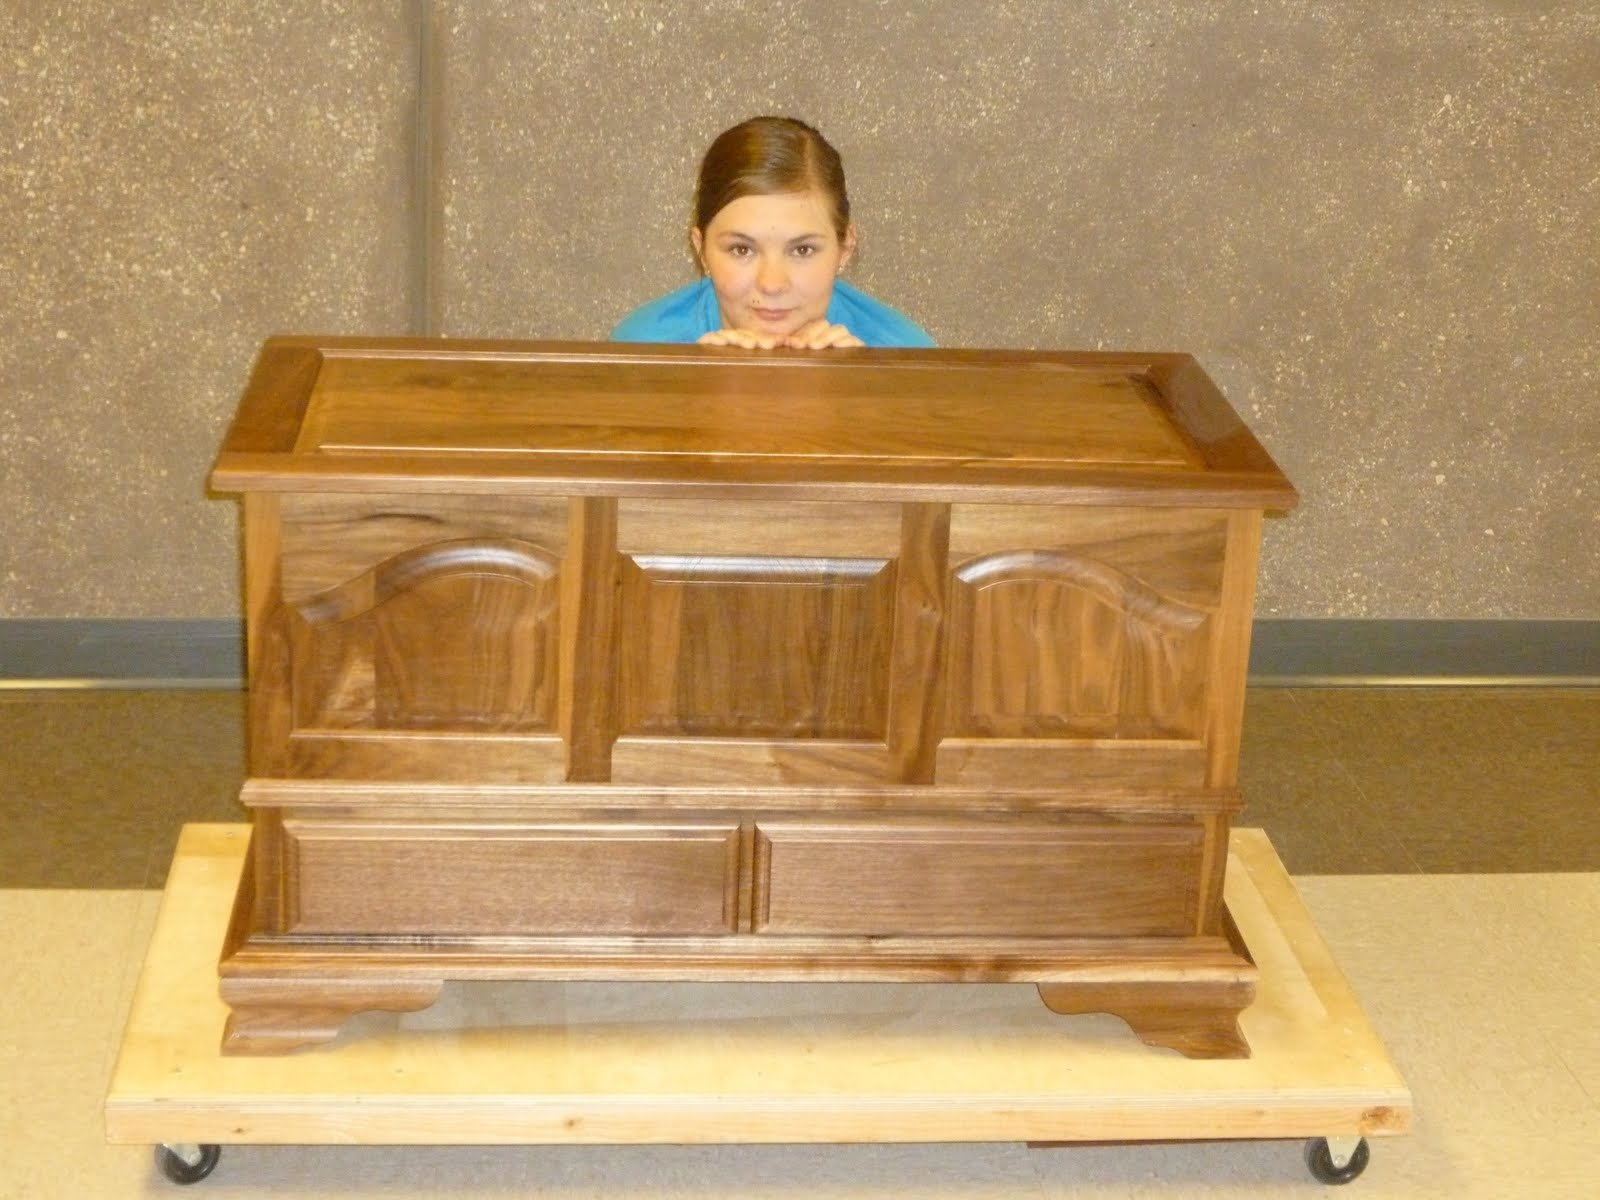 10 Nice Woodshop Project Ideas For High School cool wood projects for high school students inspiring bridal 2020